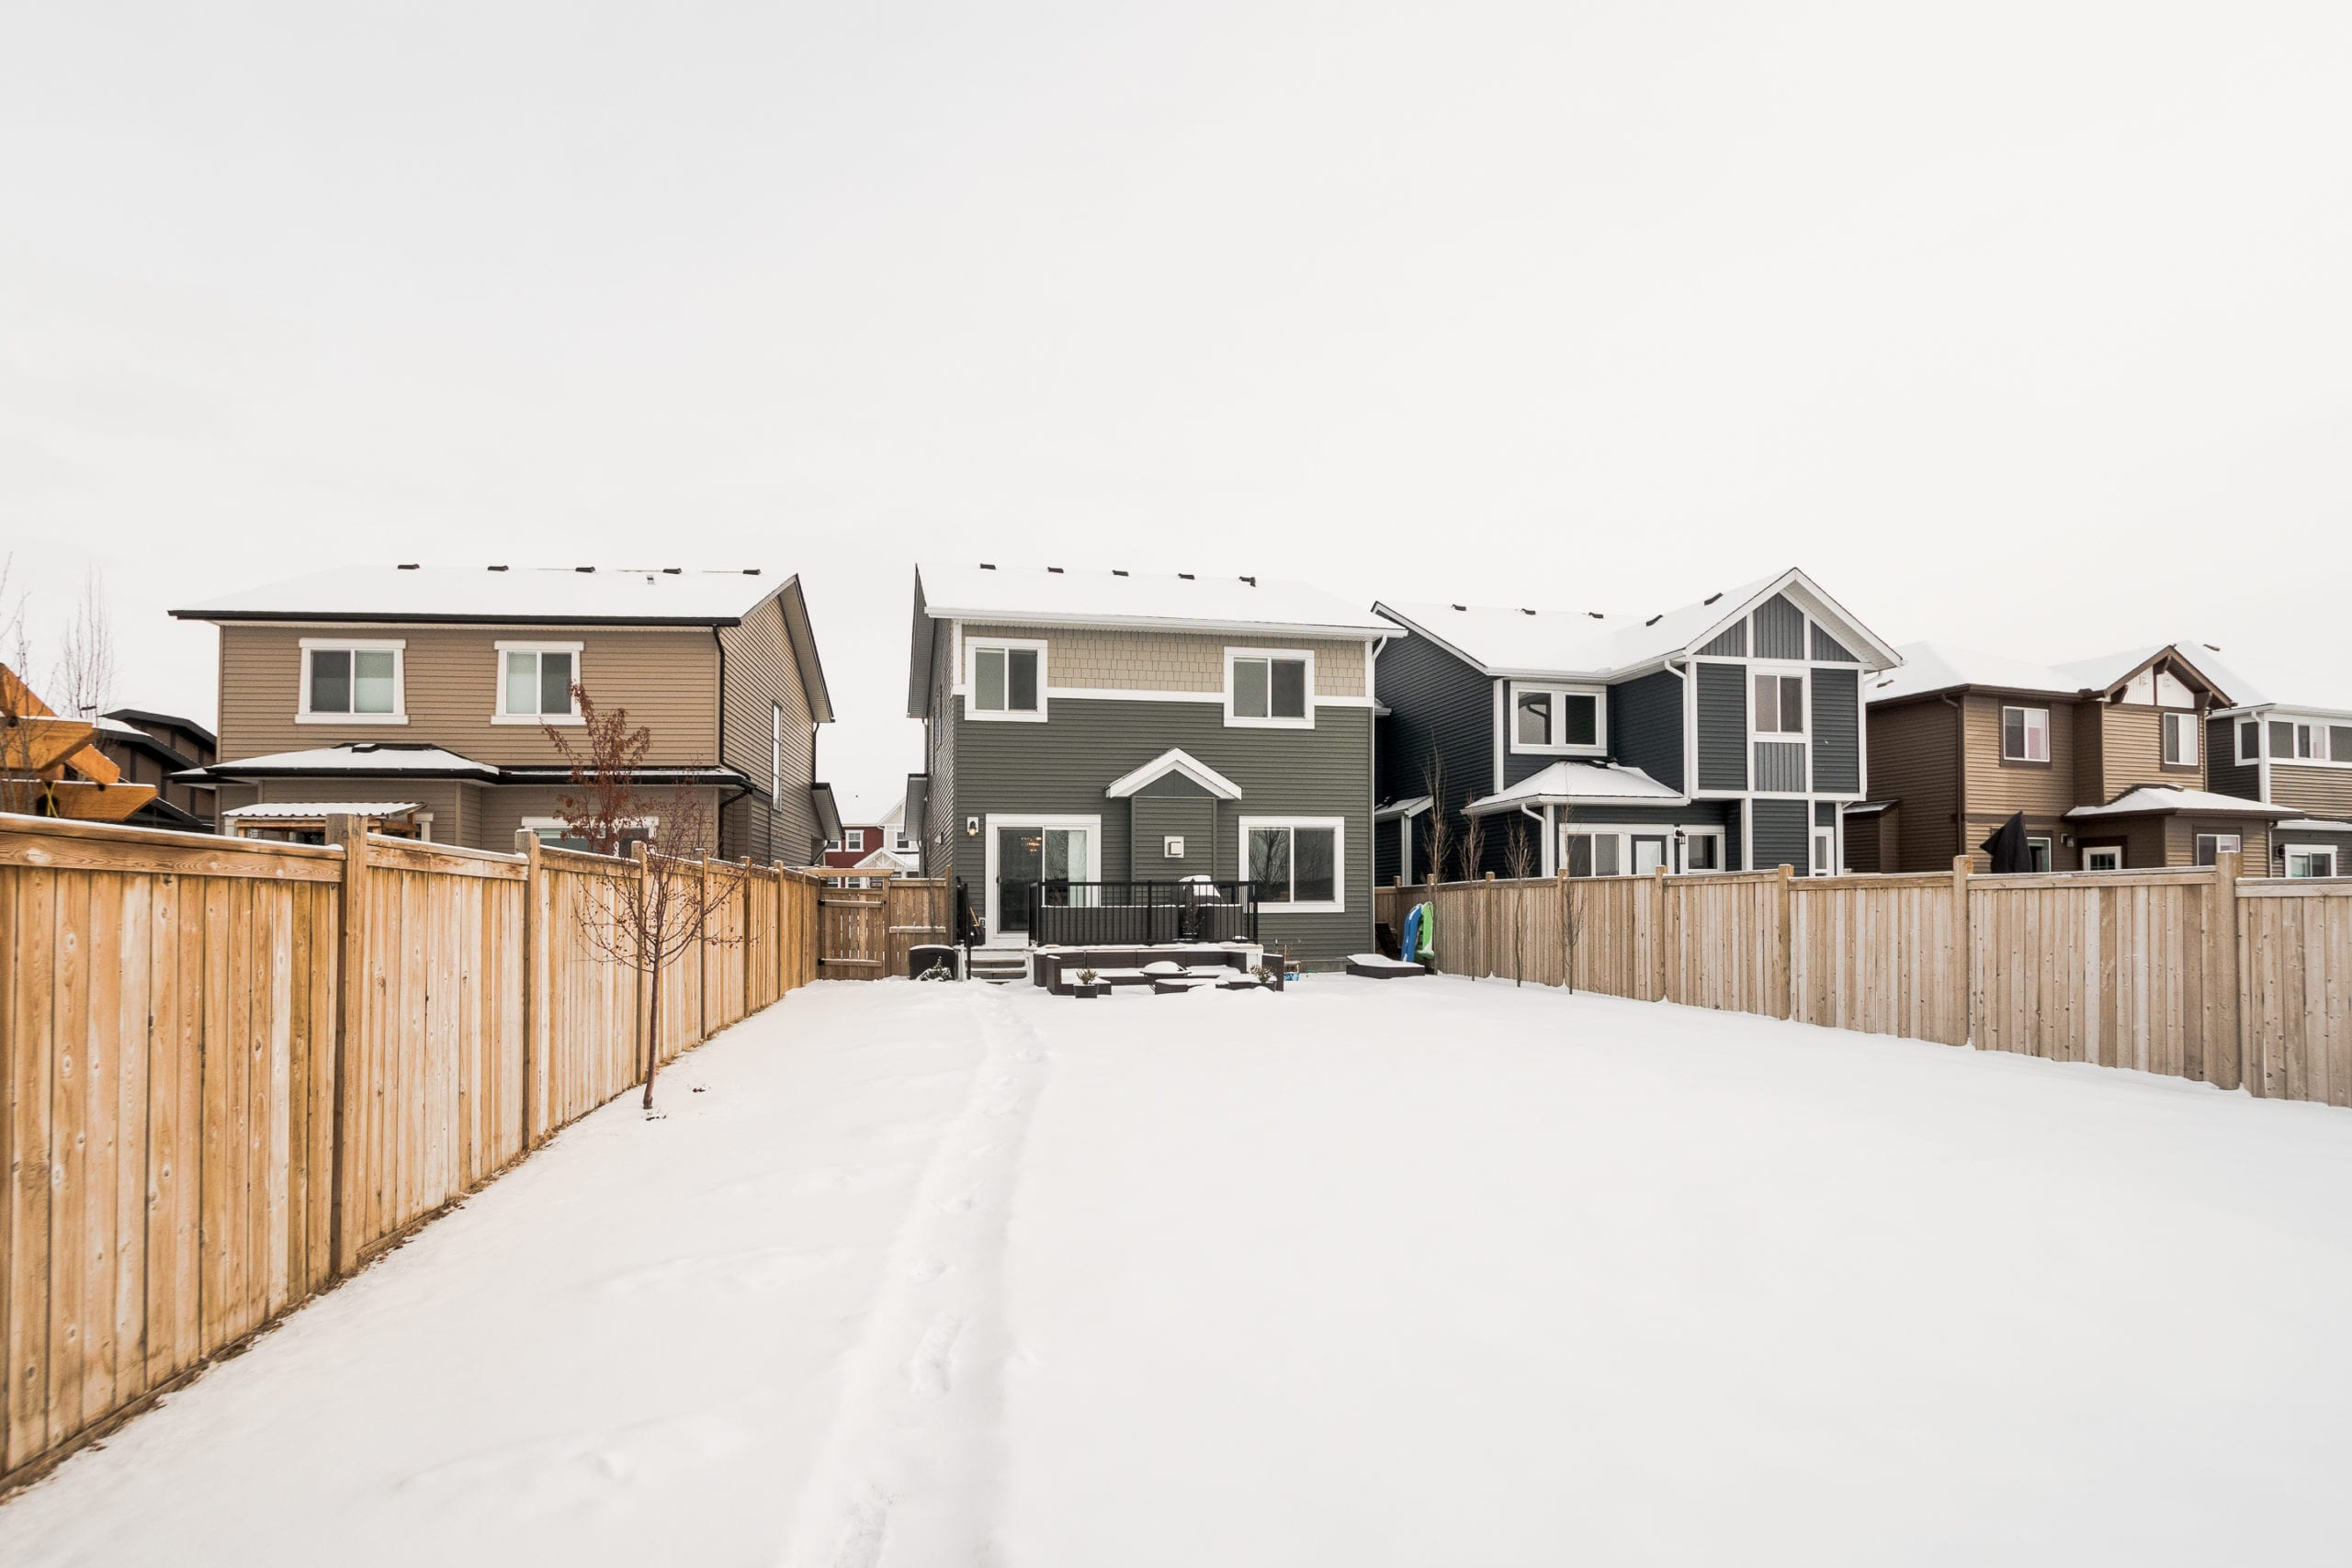 Hello Gorgeous - 1306 Kings Heights Way SE, Airdrie AB. - Tara Molina Real Estate (53 of 53)